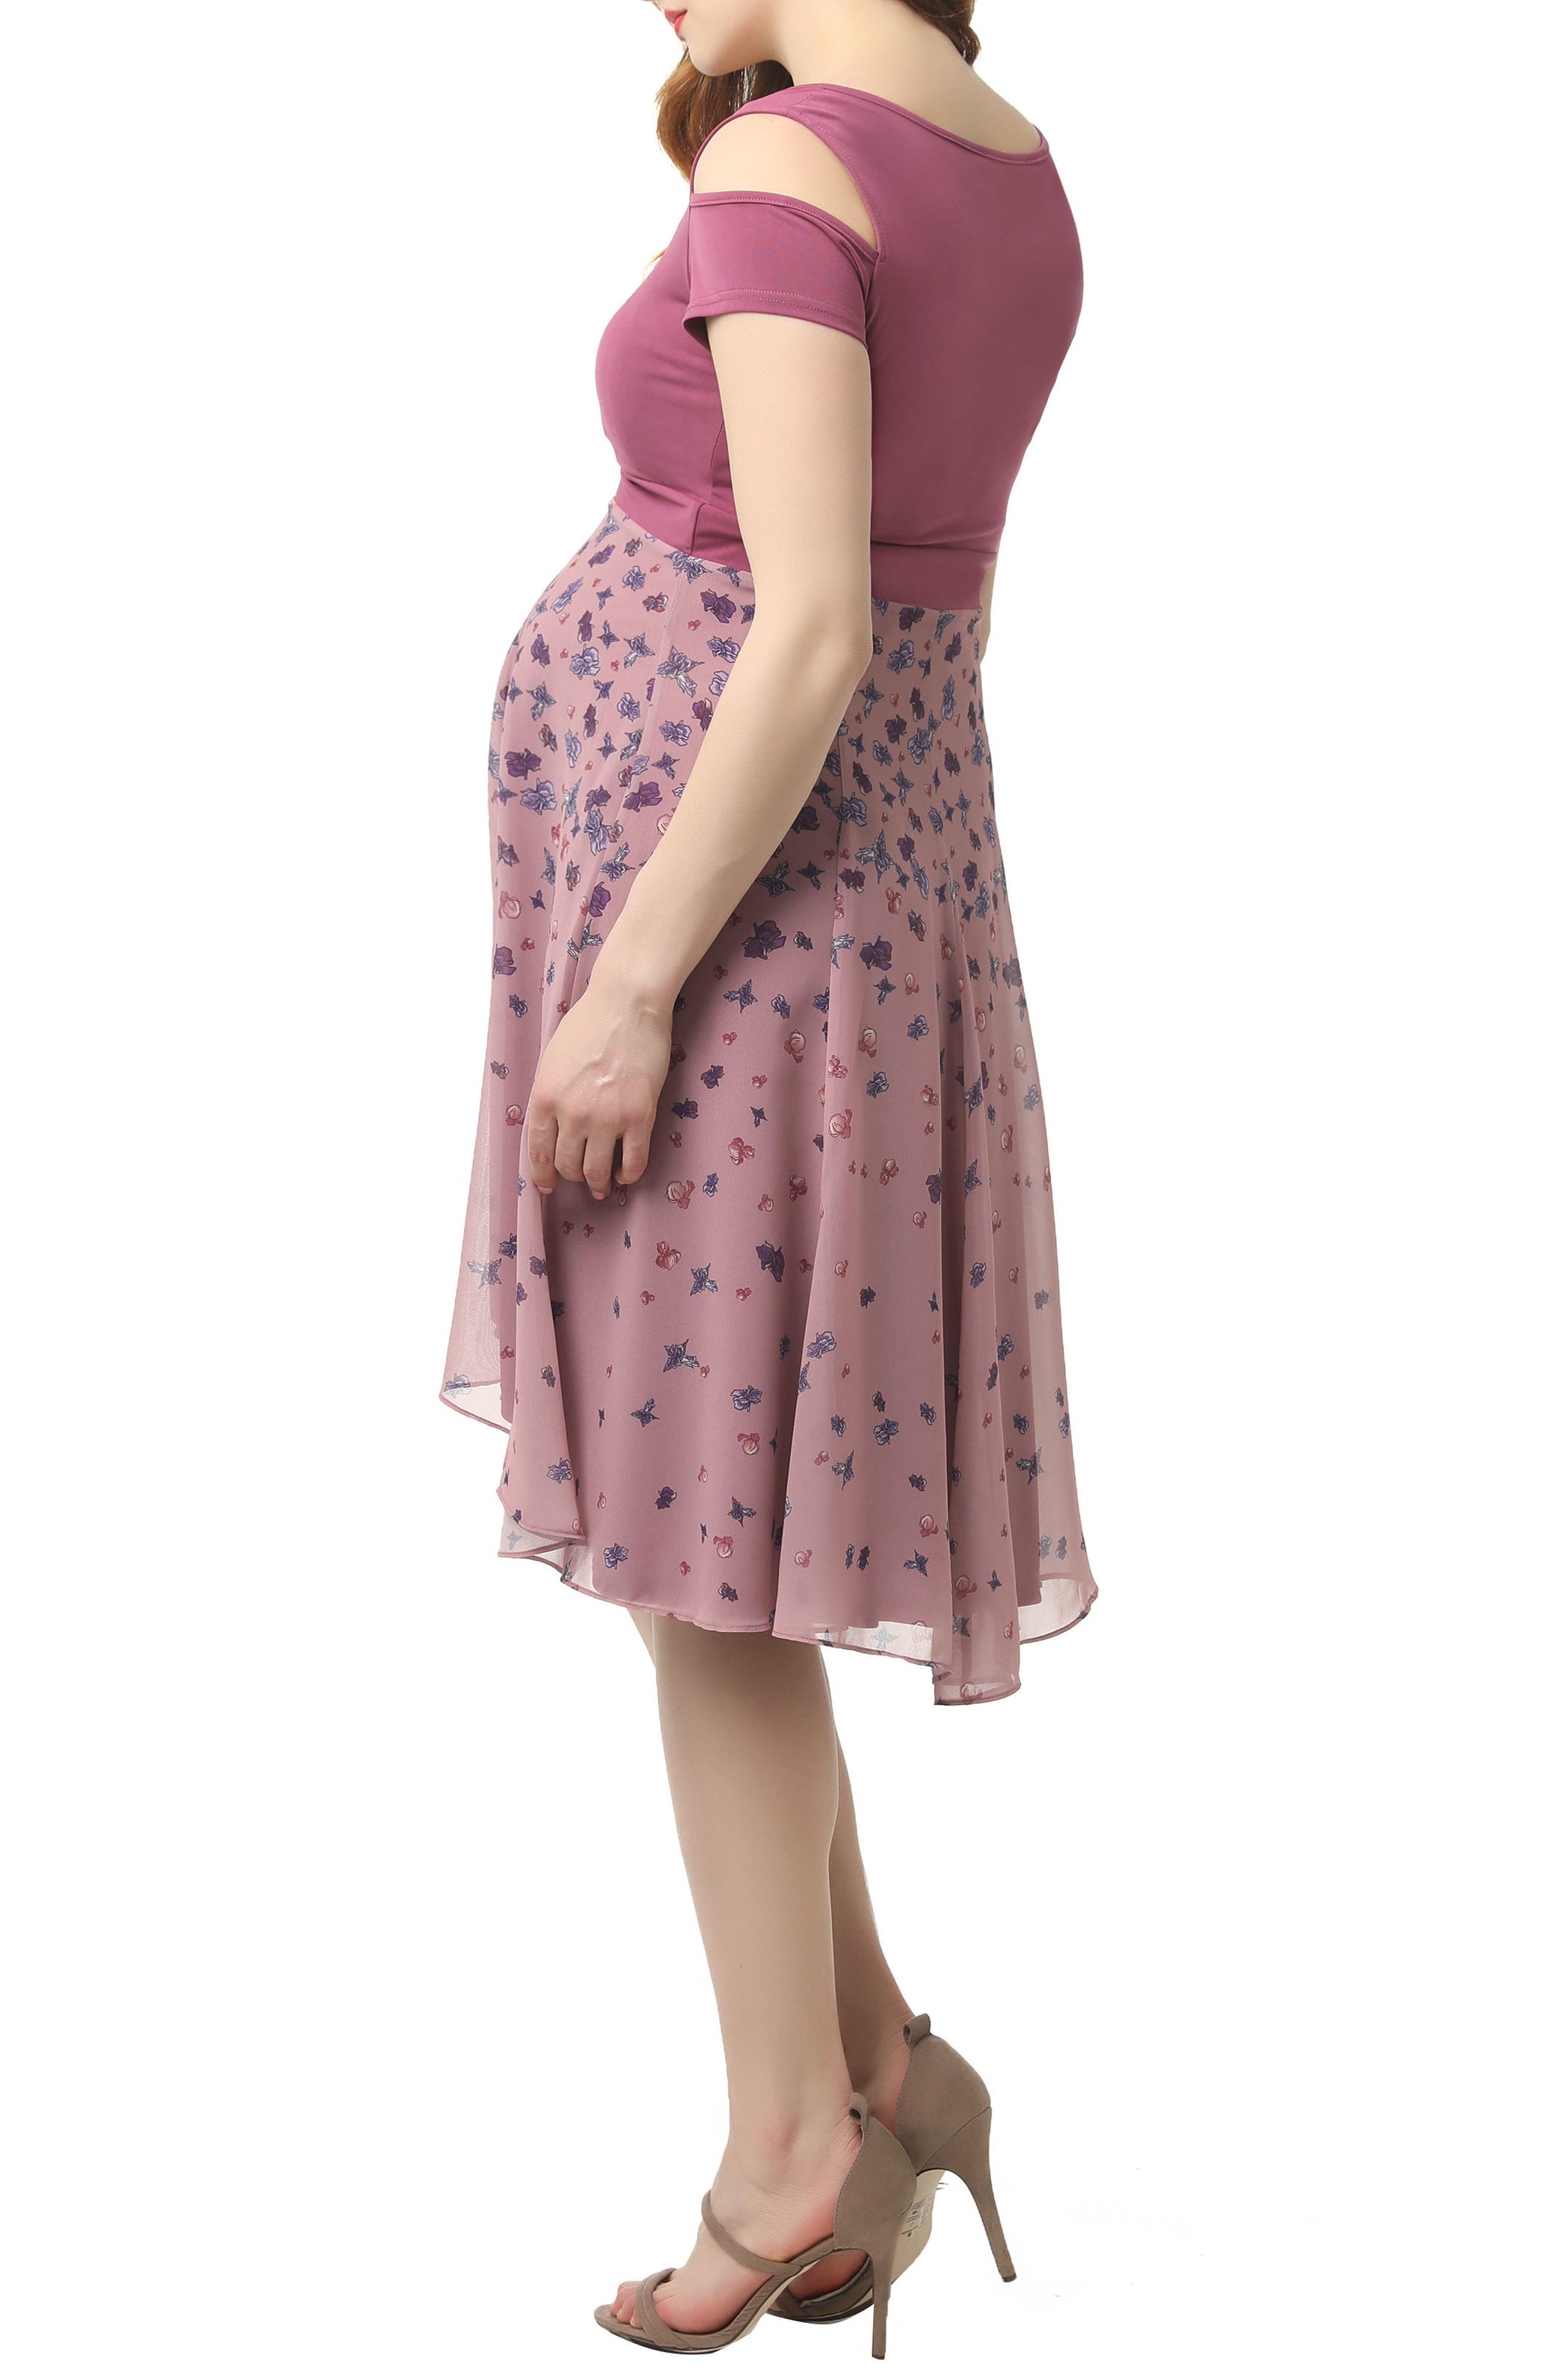 KIMI AND KAI, Erica Cold Shoulder Maternity Dress, Alternate thumbnail 3, color, ROSE PINK